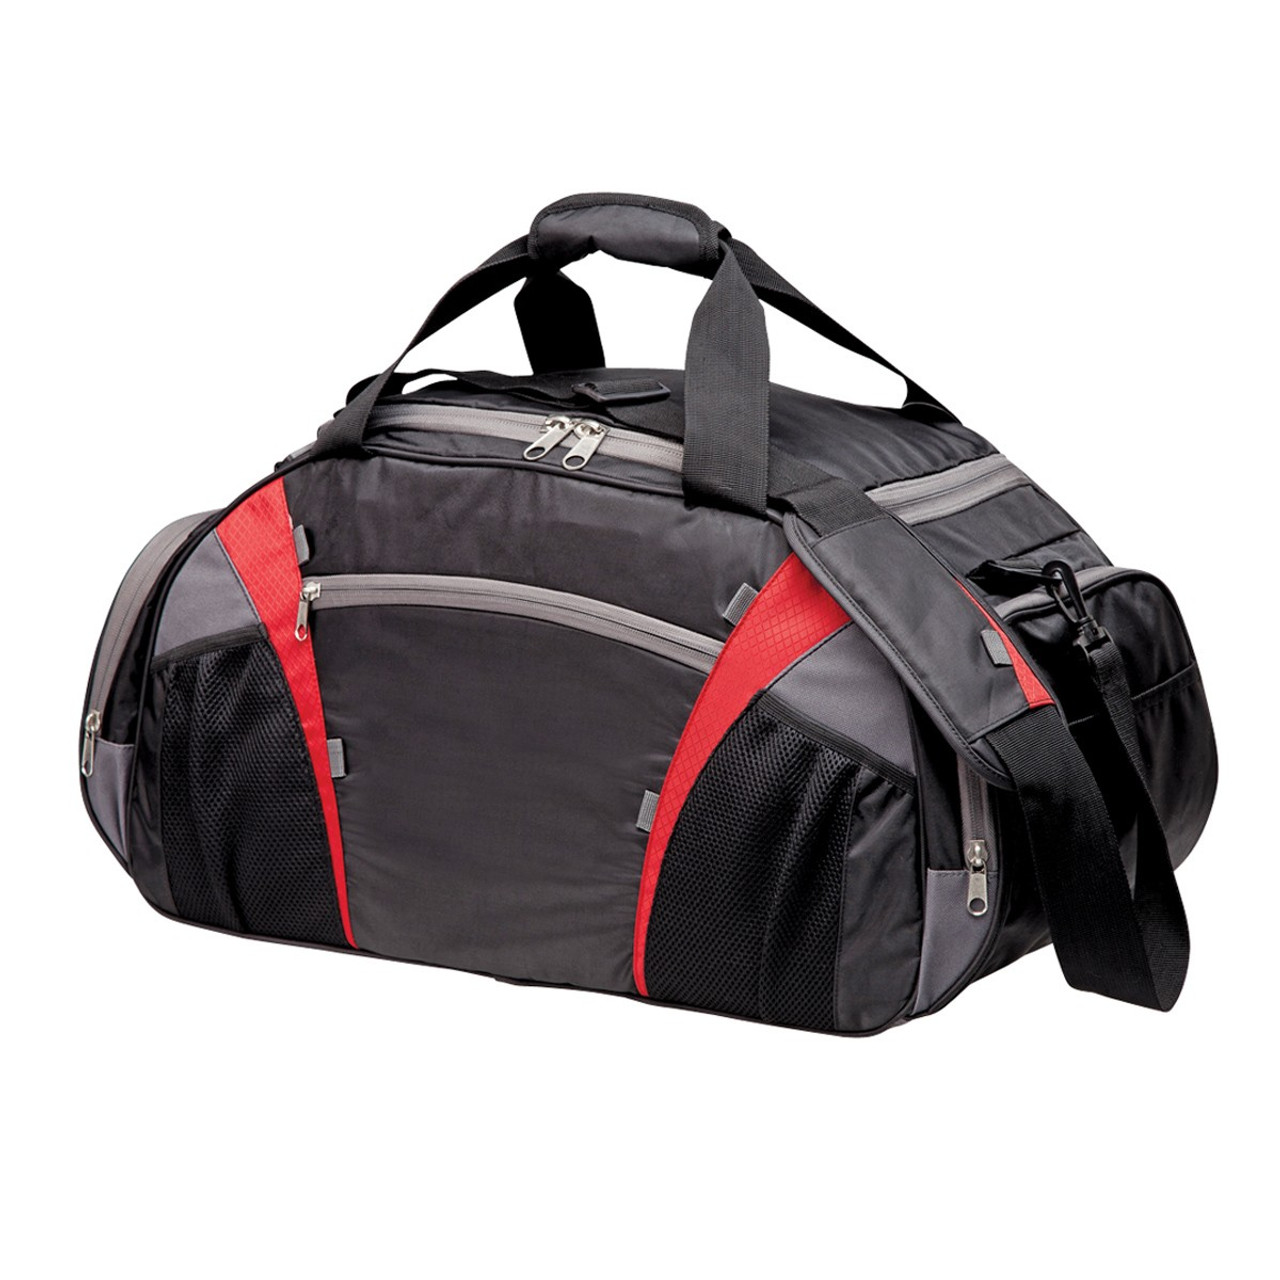 2e1c06862db1 BG1159 - Chicane Sports Bag - Online Workwear